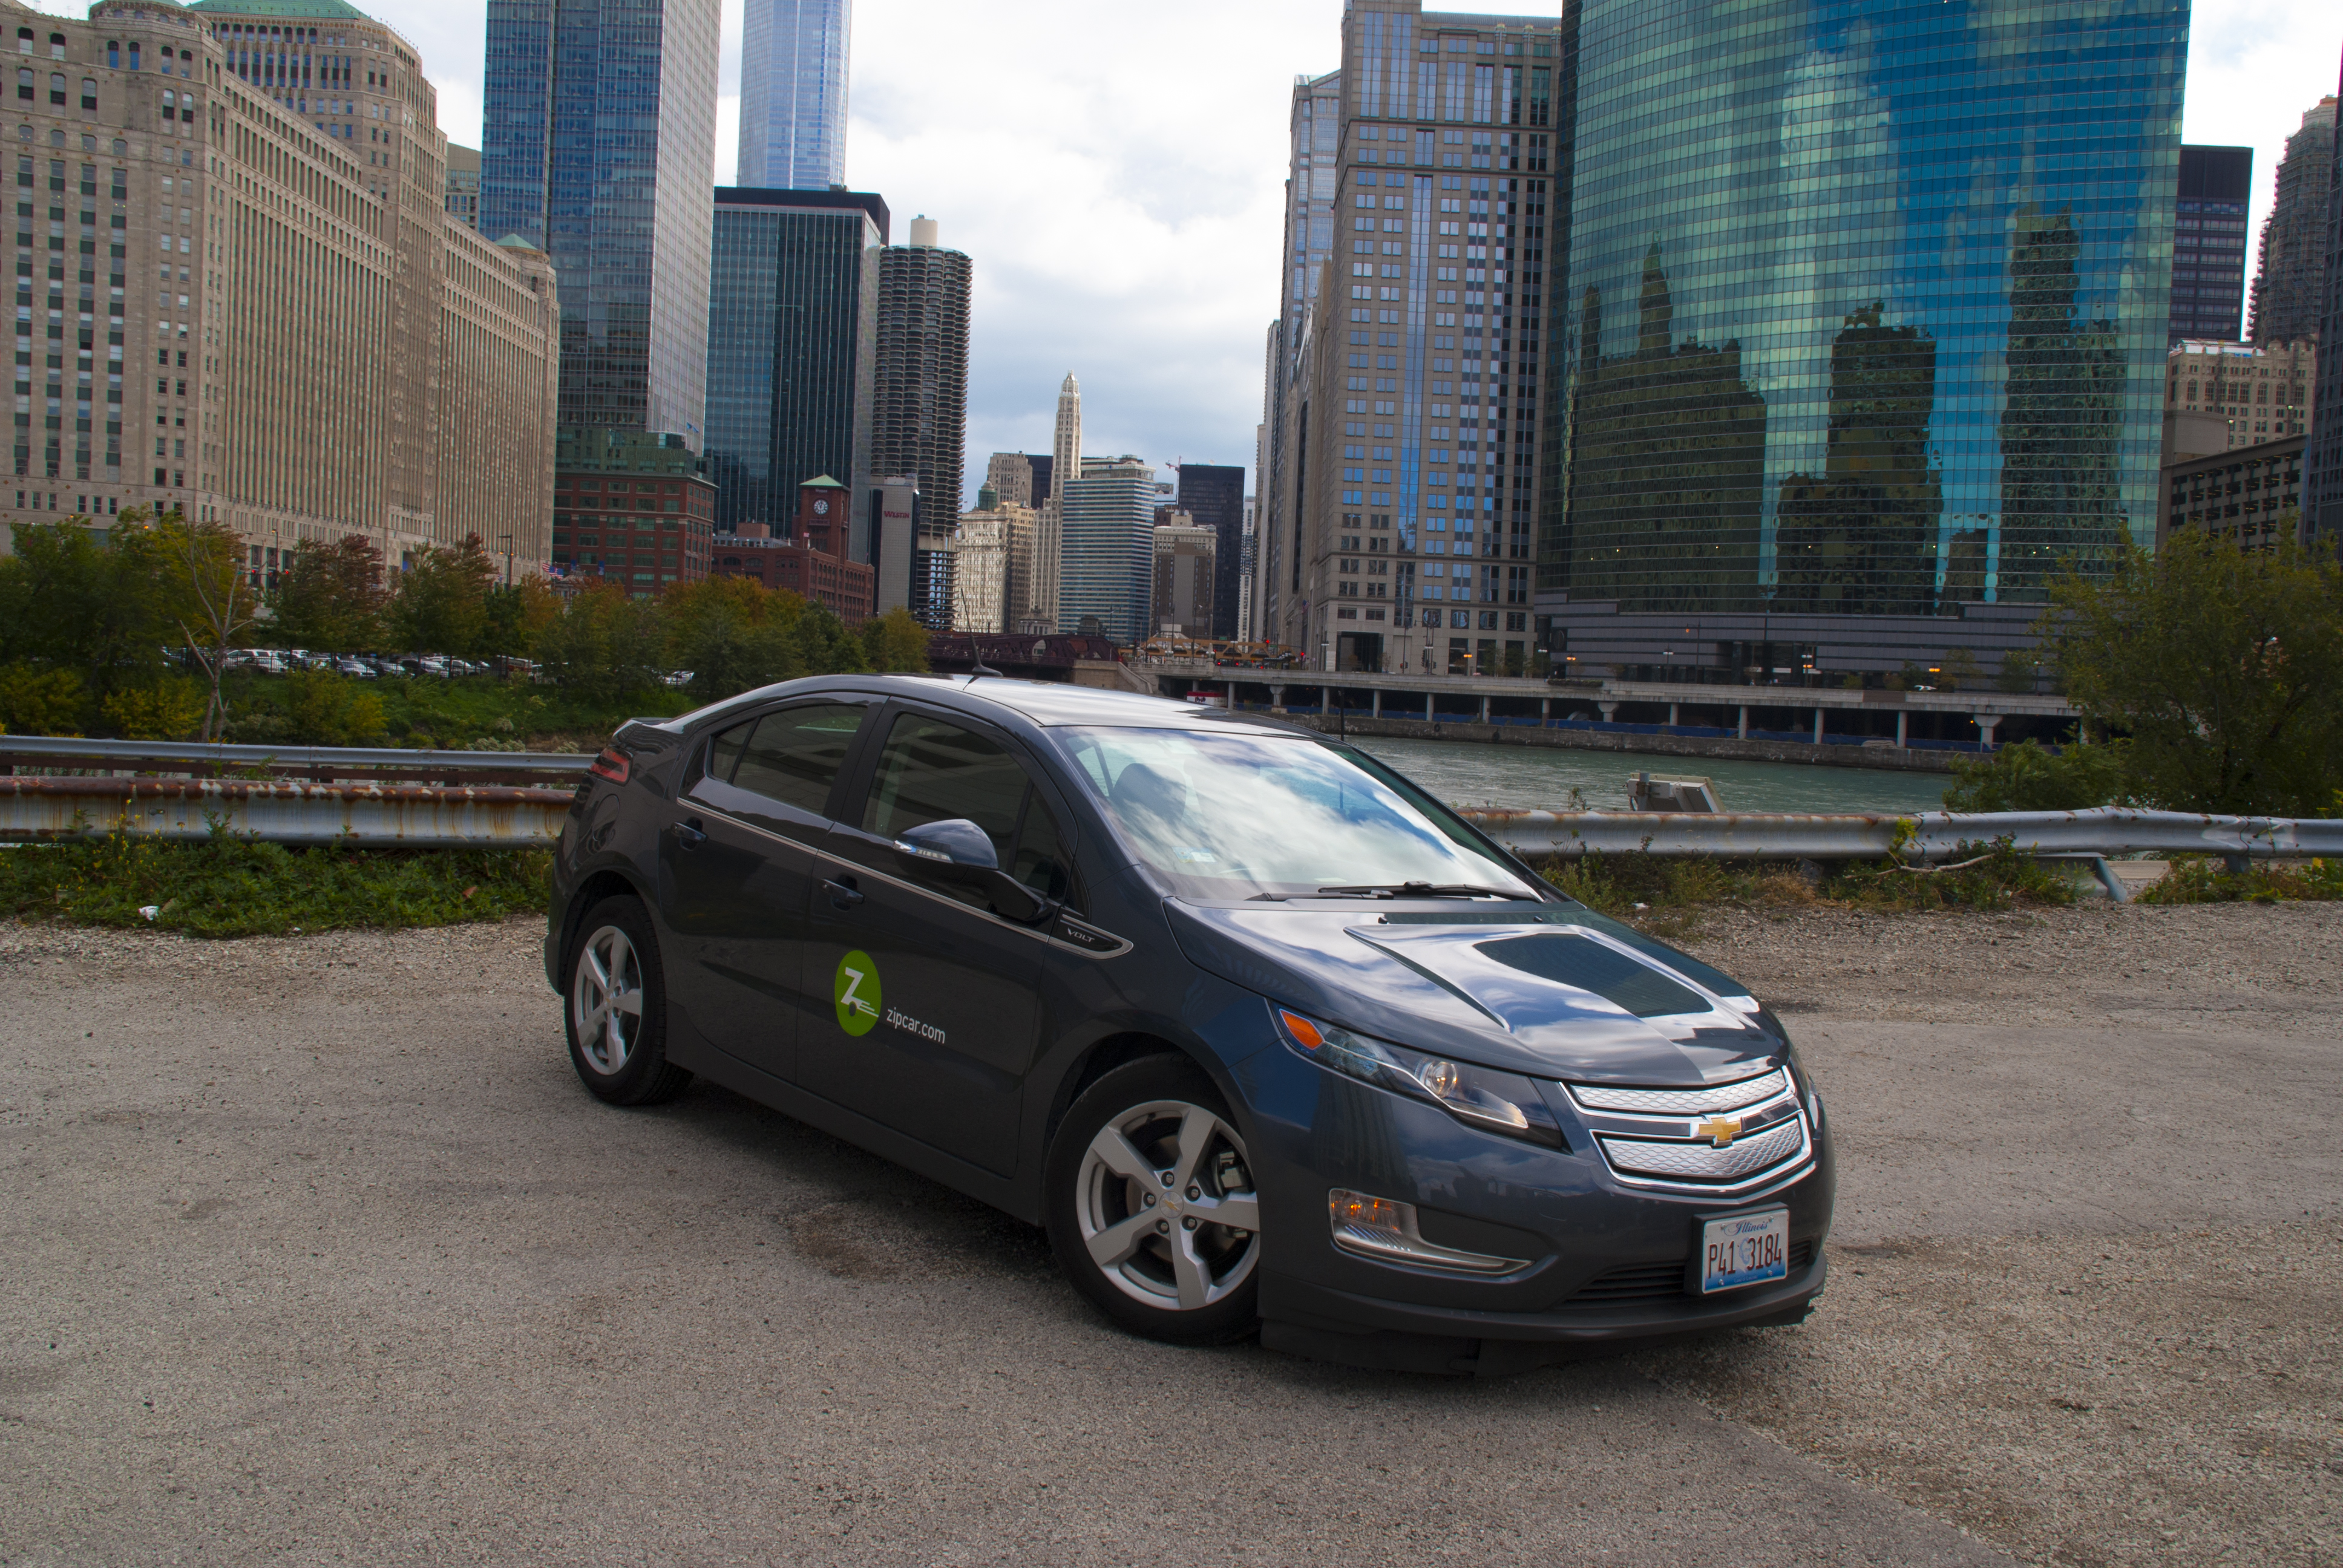 The Chevrolet Volt Plug-in hybrid is available to Zipcar members in Chicago.